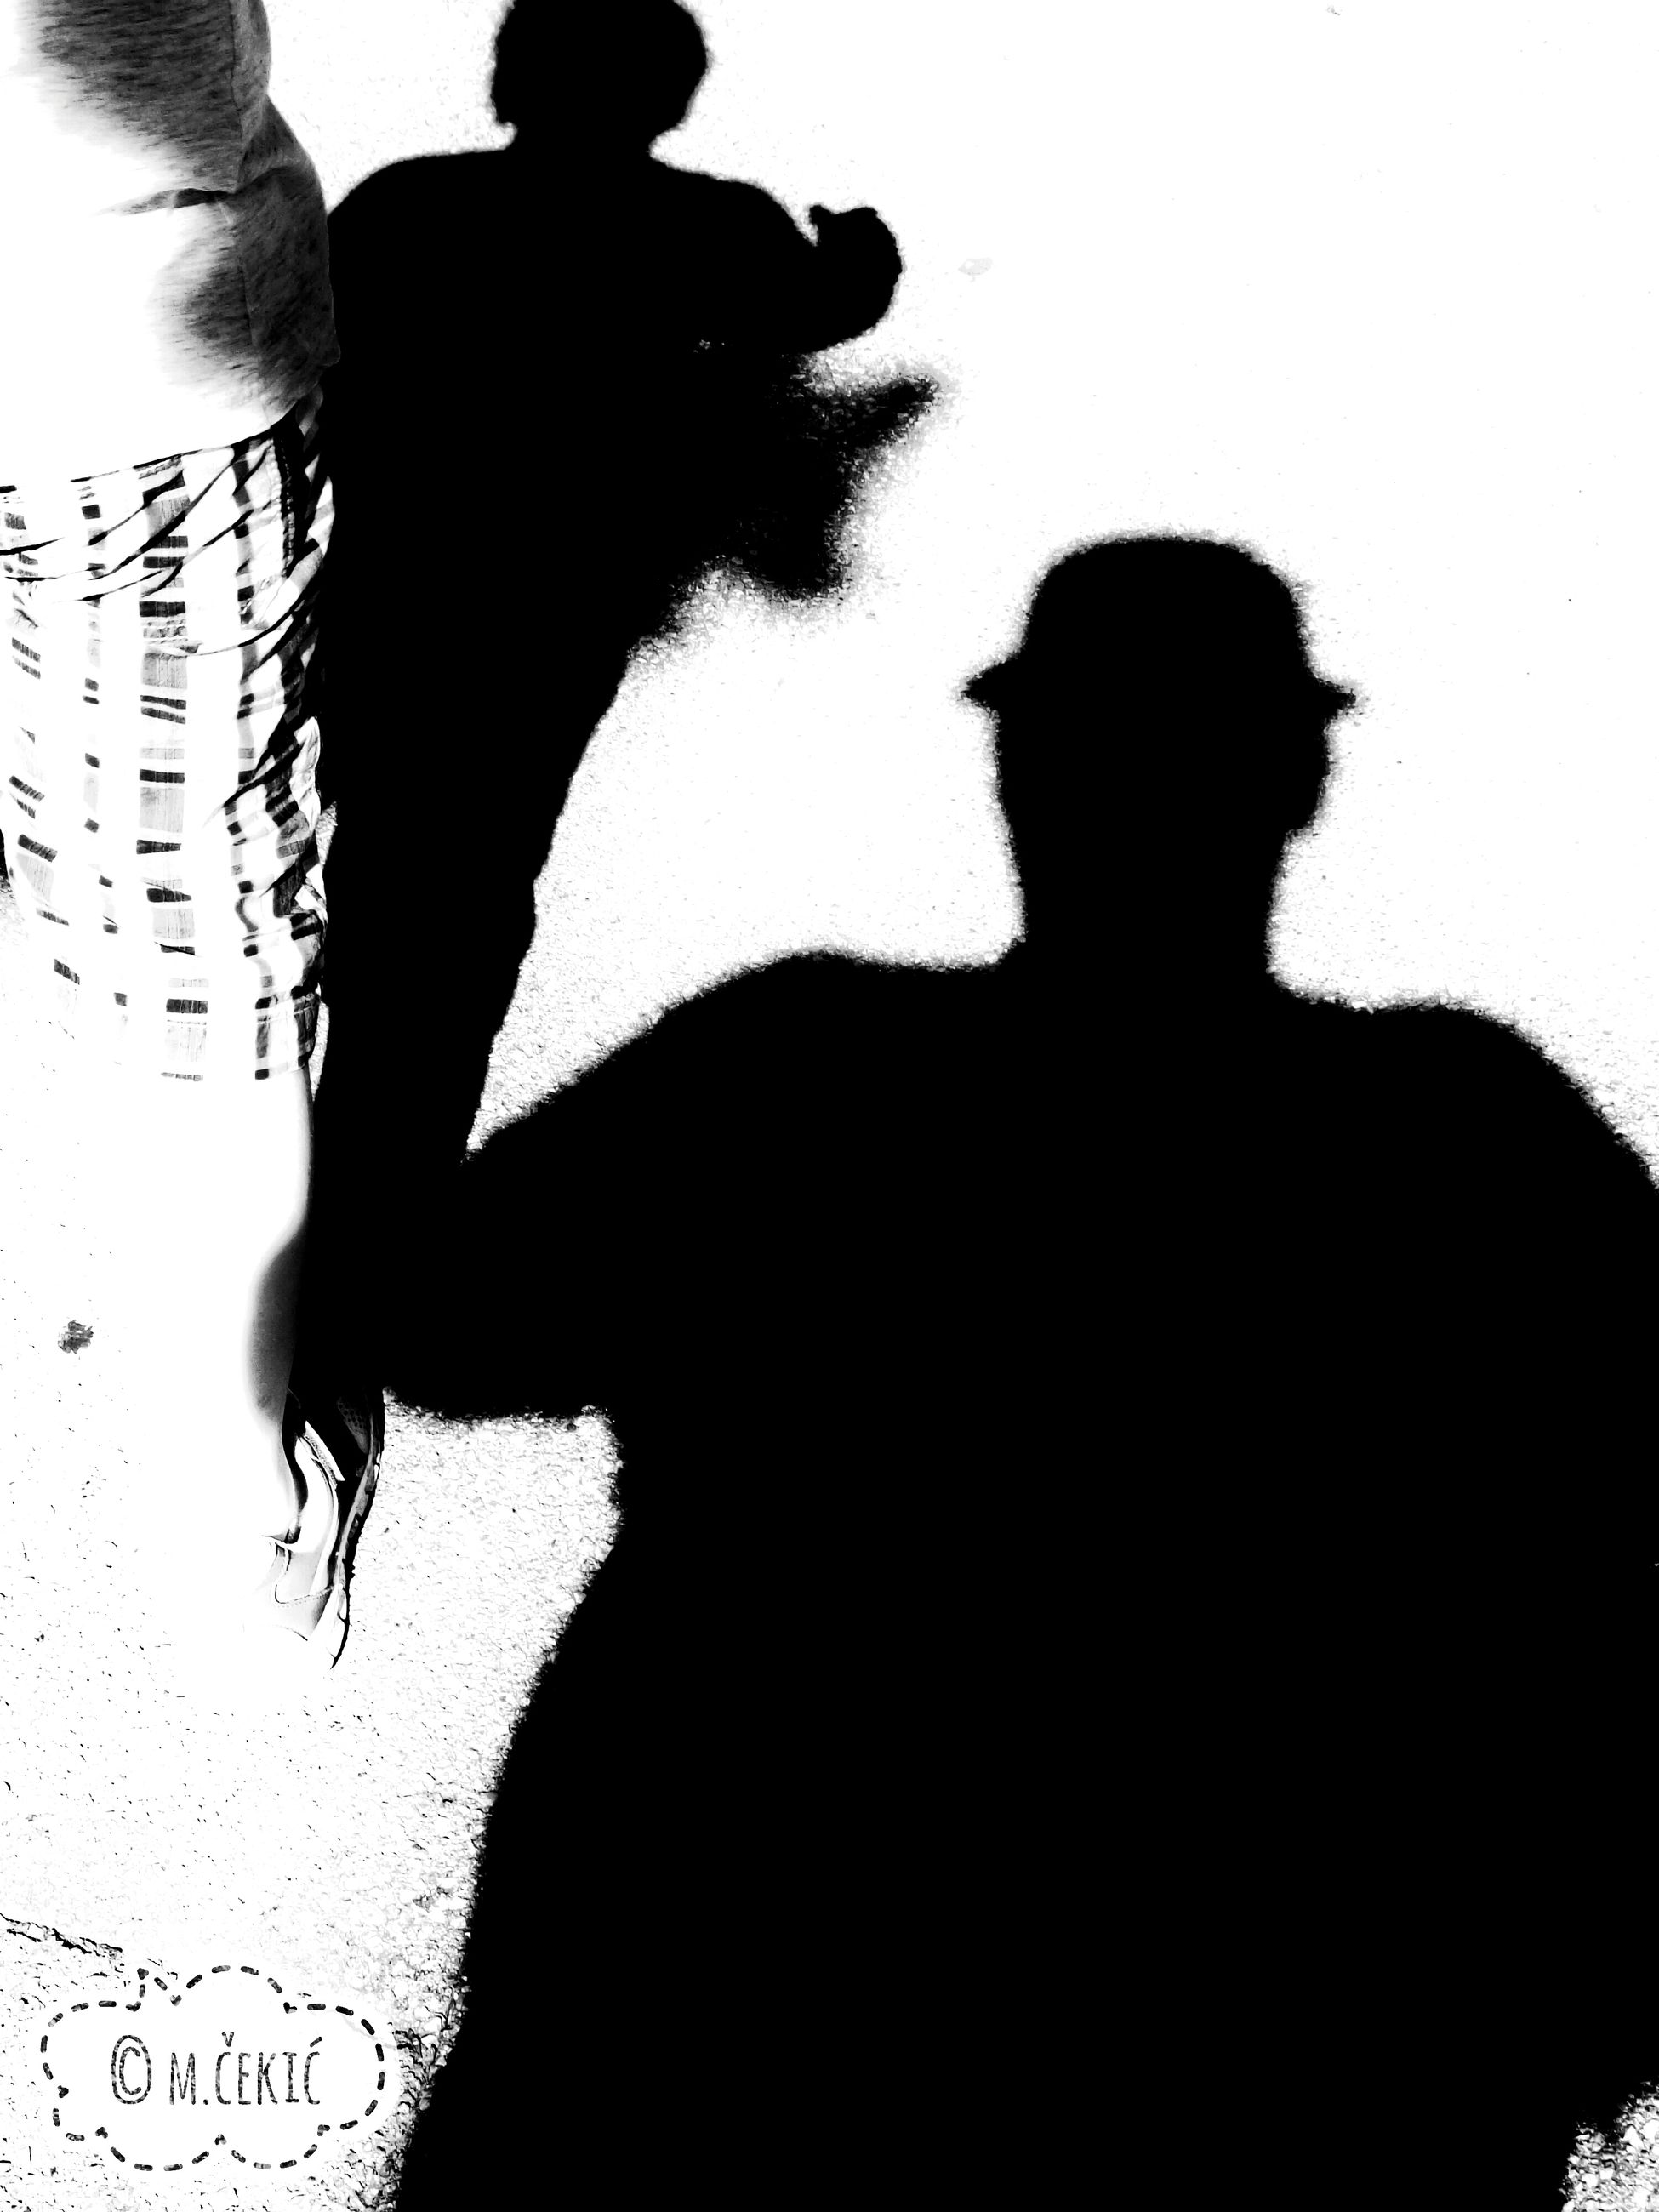 shadow, men, silhouette, sunlight, pets, sunny, person, focus on shadow, domestic animals, outline